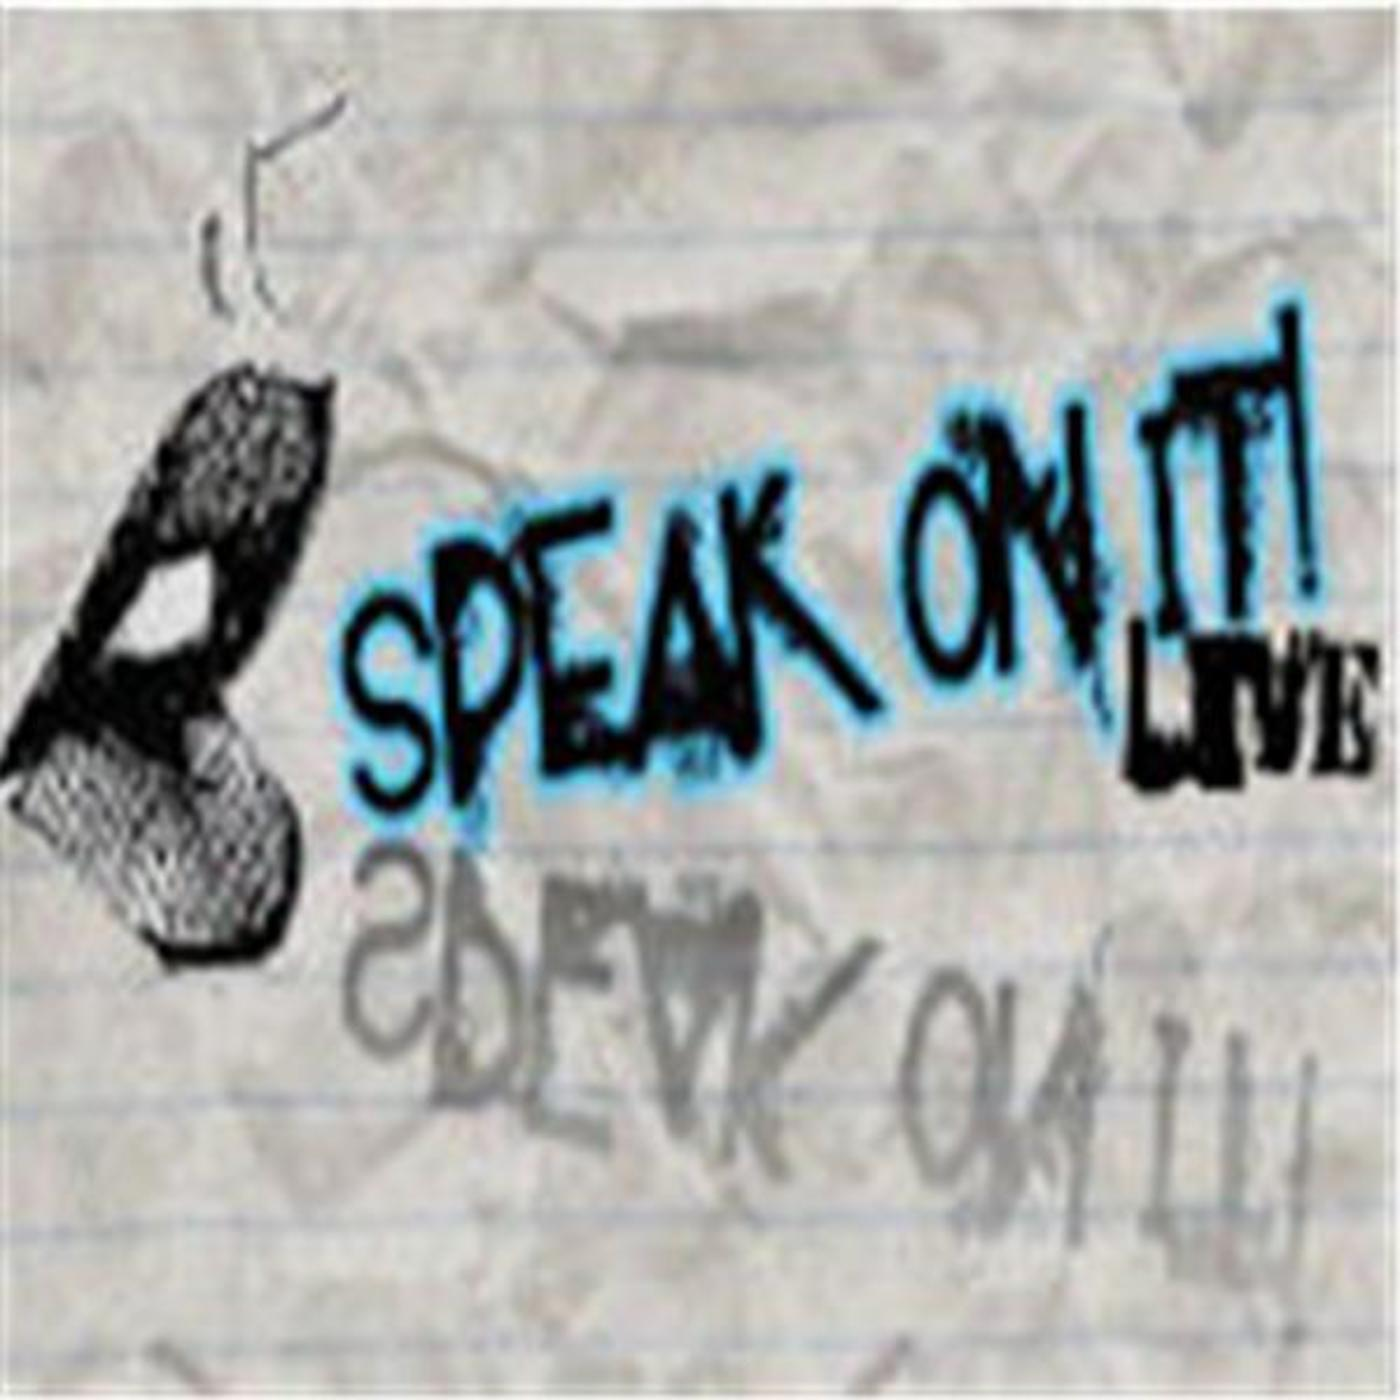 Speak On It! Live